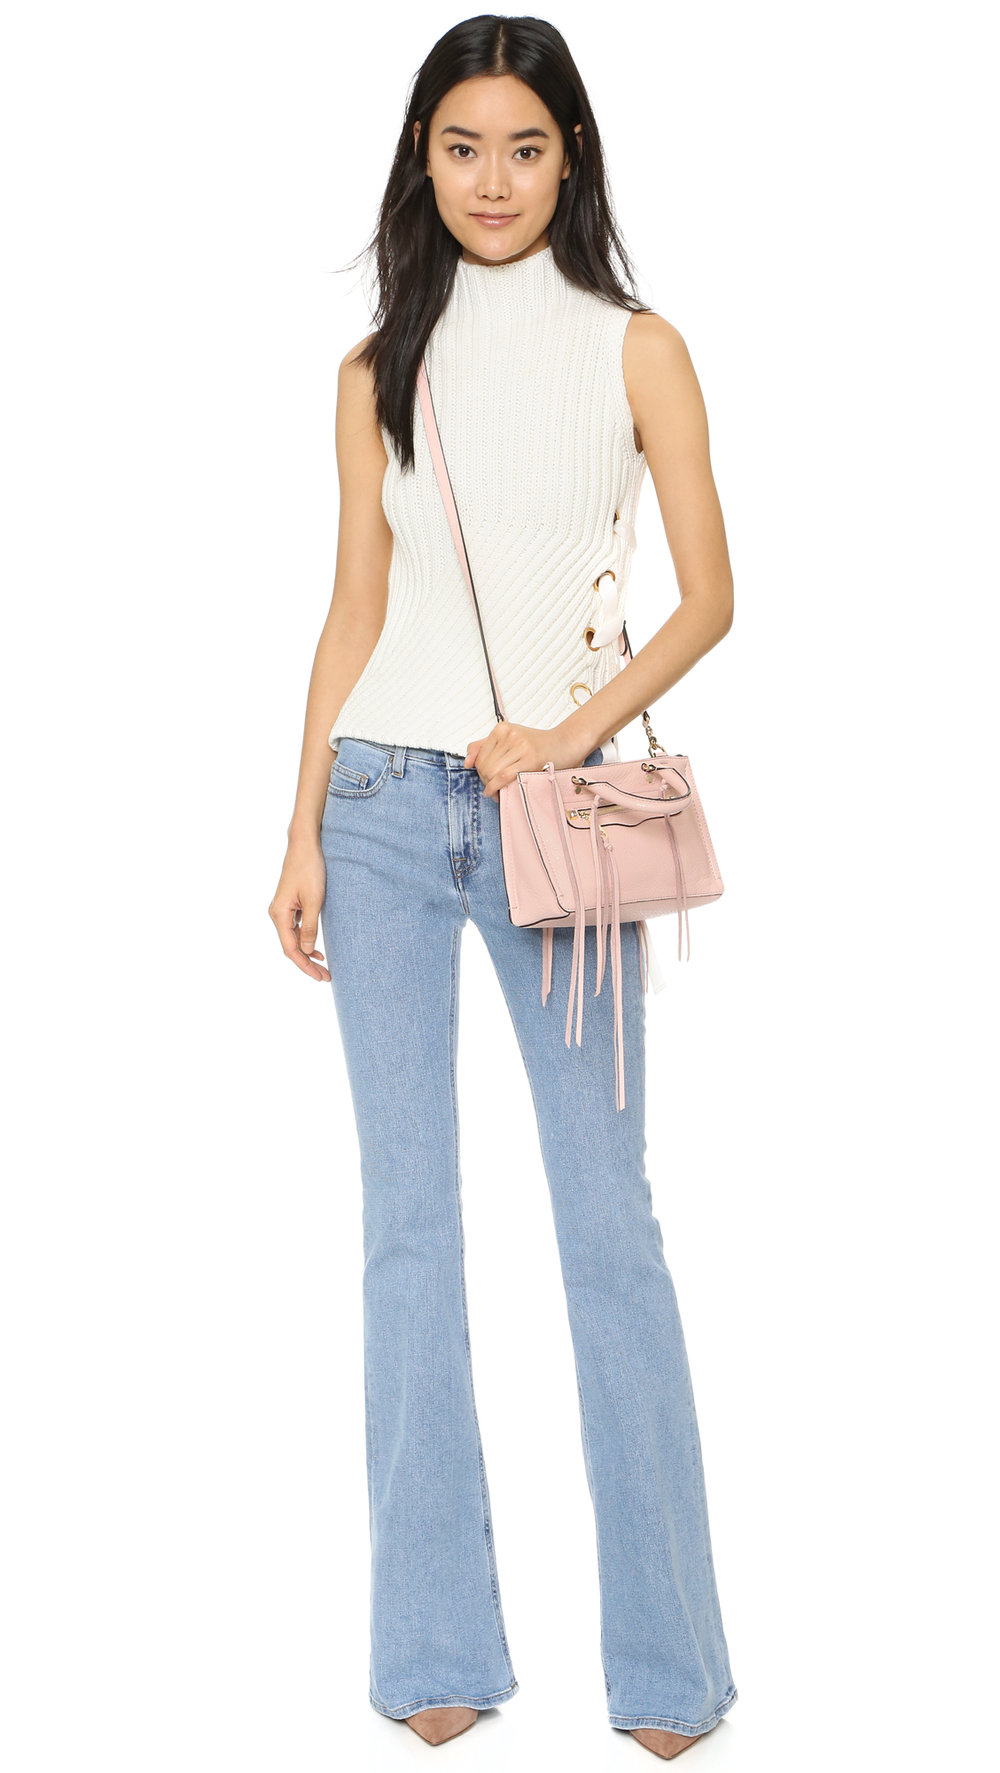 rebecca-minkoff-baby-pink-micro-regan-satchel-baby-pink-product-3-464792231-normal.jpeg